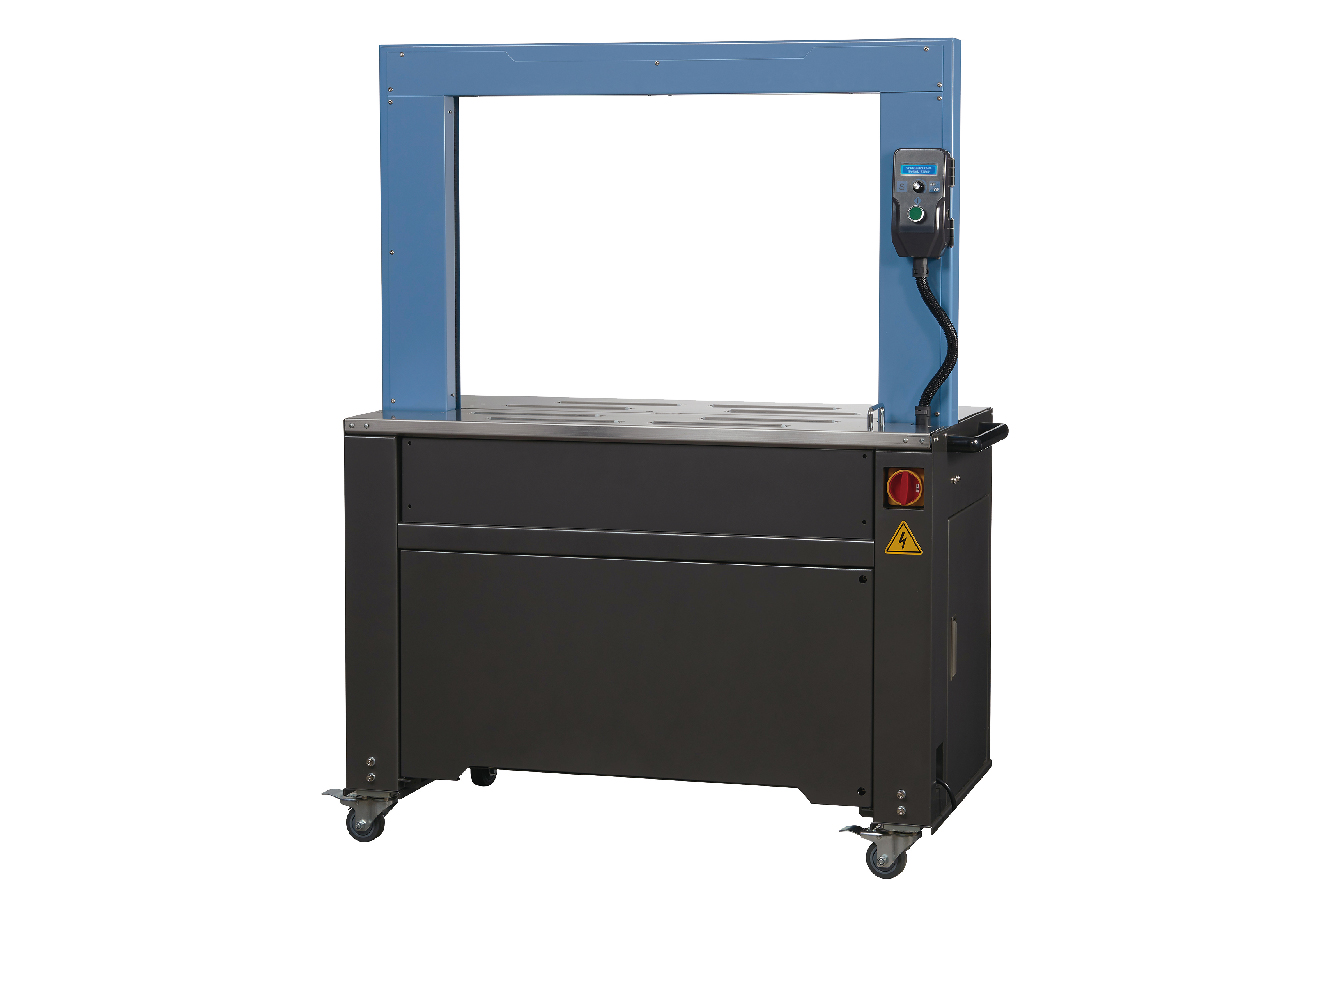 Semi-automatic and automatic strapping machines